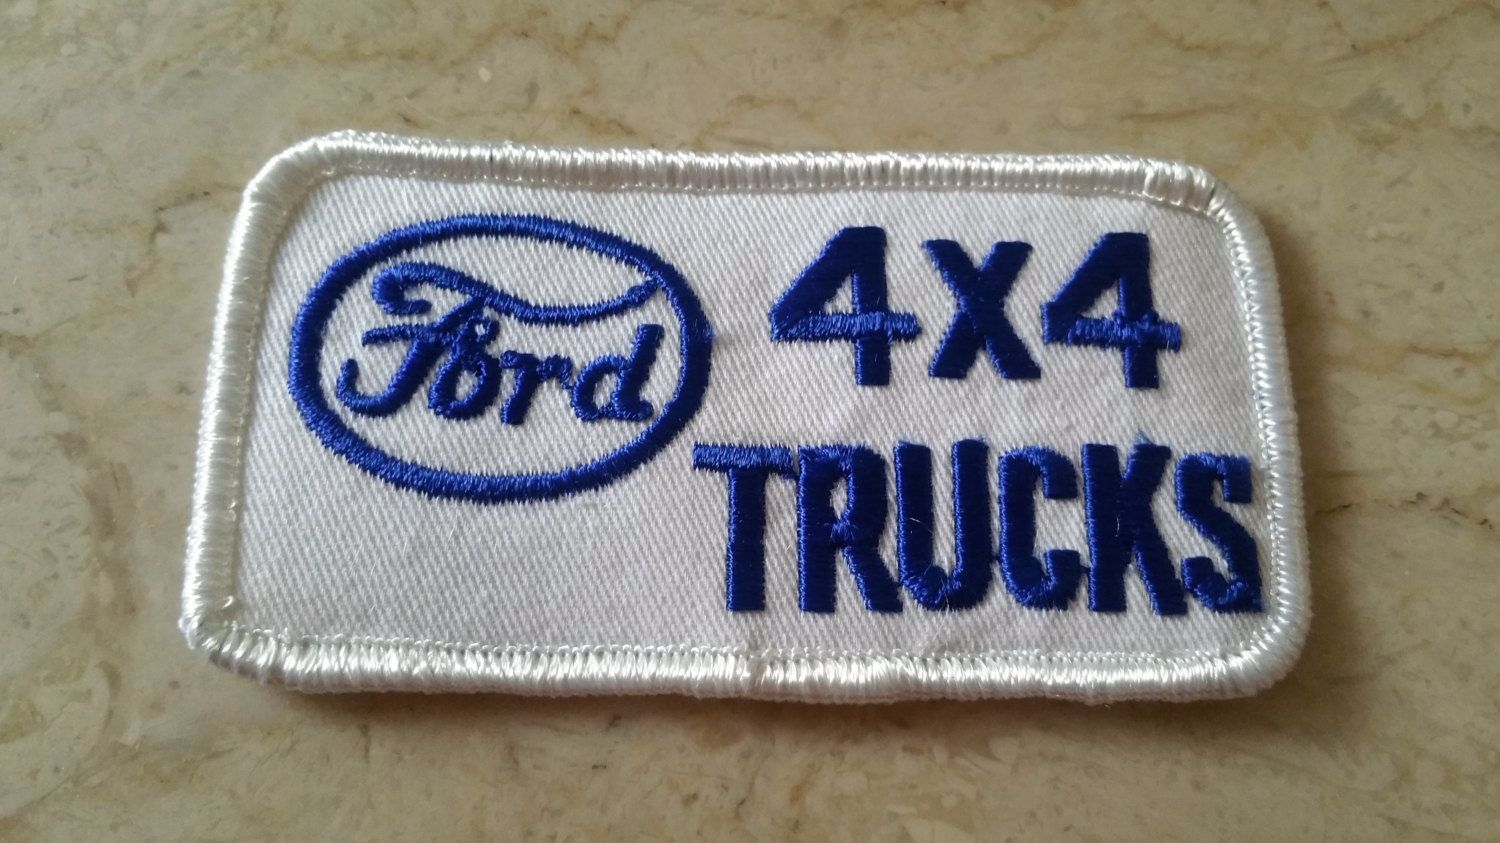 Free Us Shipping 1970s Vintage Ford 4x4 Trucks Embroidered Patch New Old Stock White Blue 2hx4w Nos Ford 4x4 4x4 Trucks Embroidered Patches